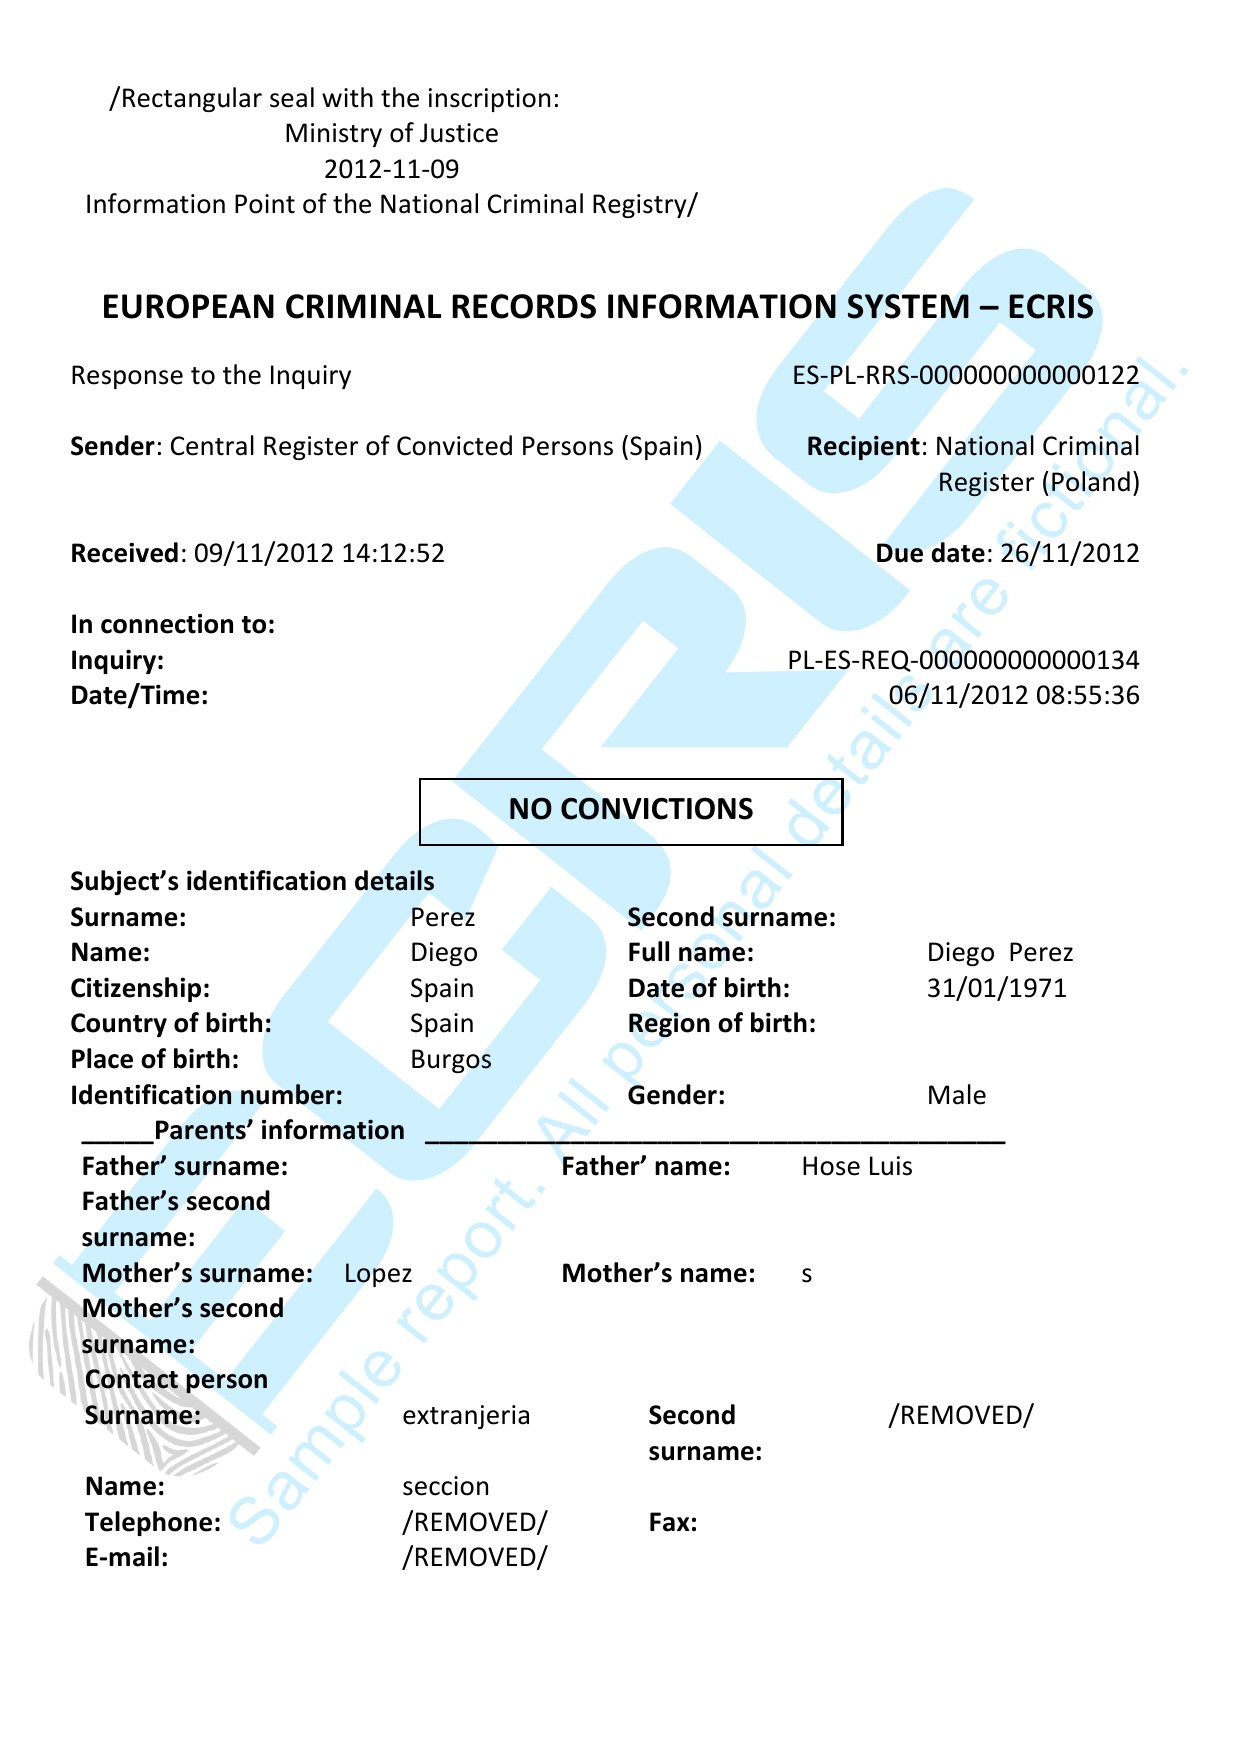 spanish criminal record check from central register of